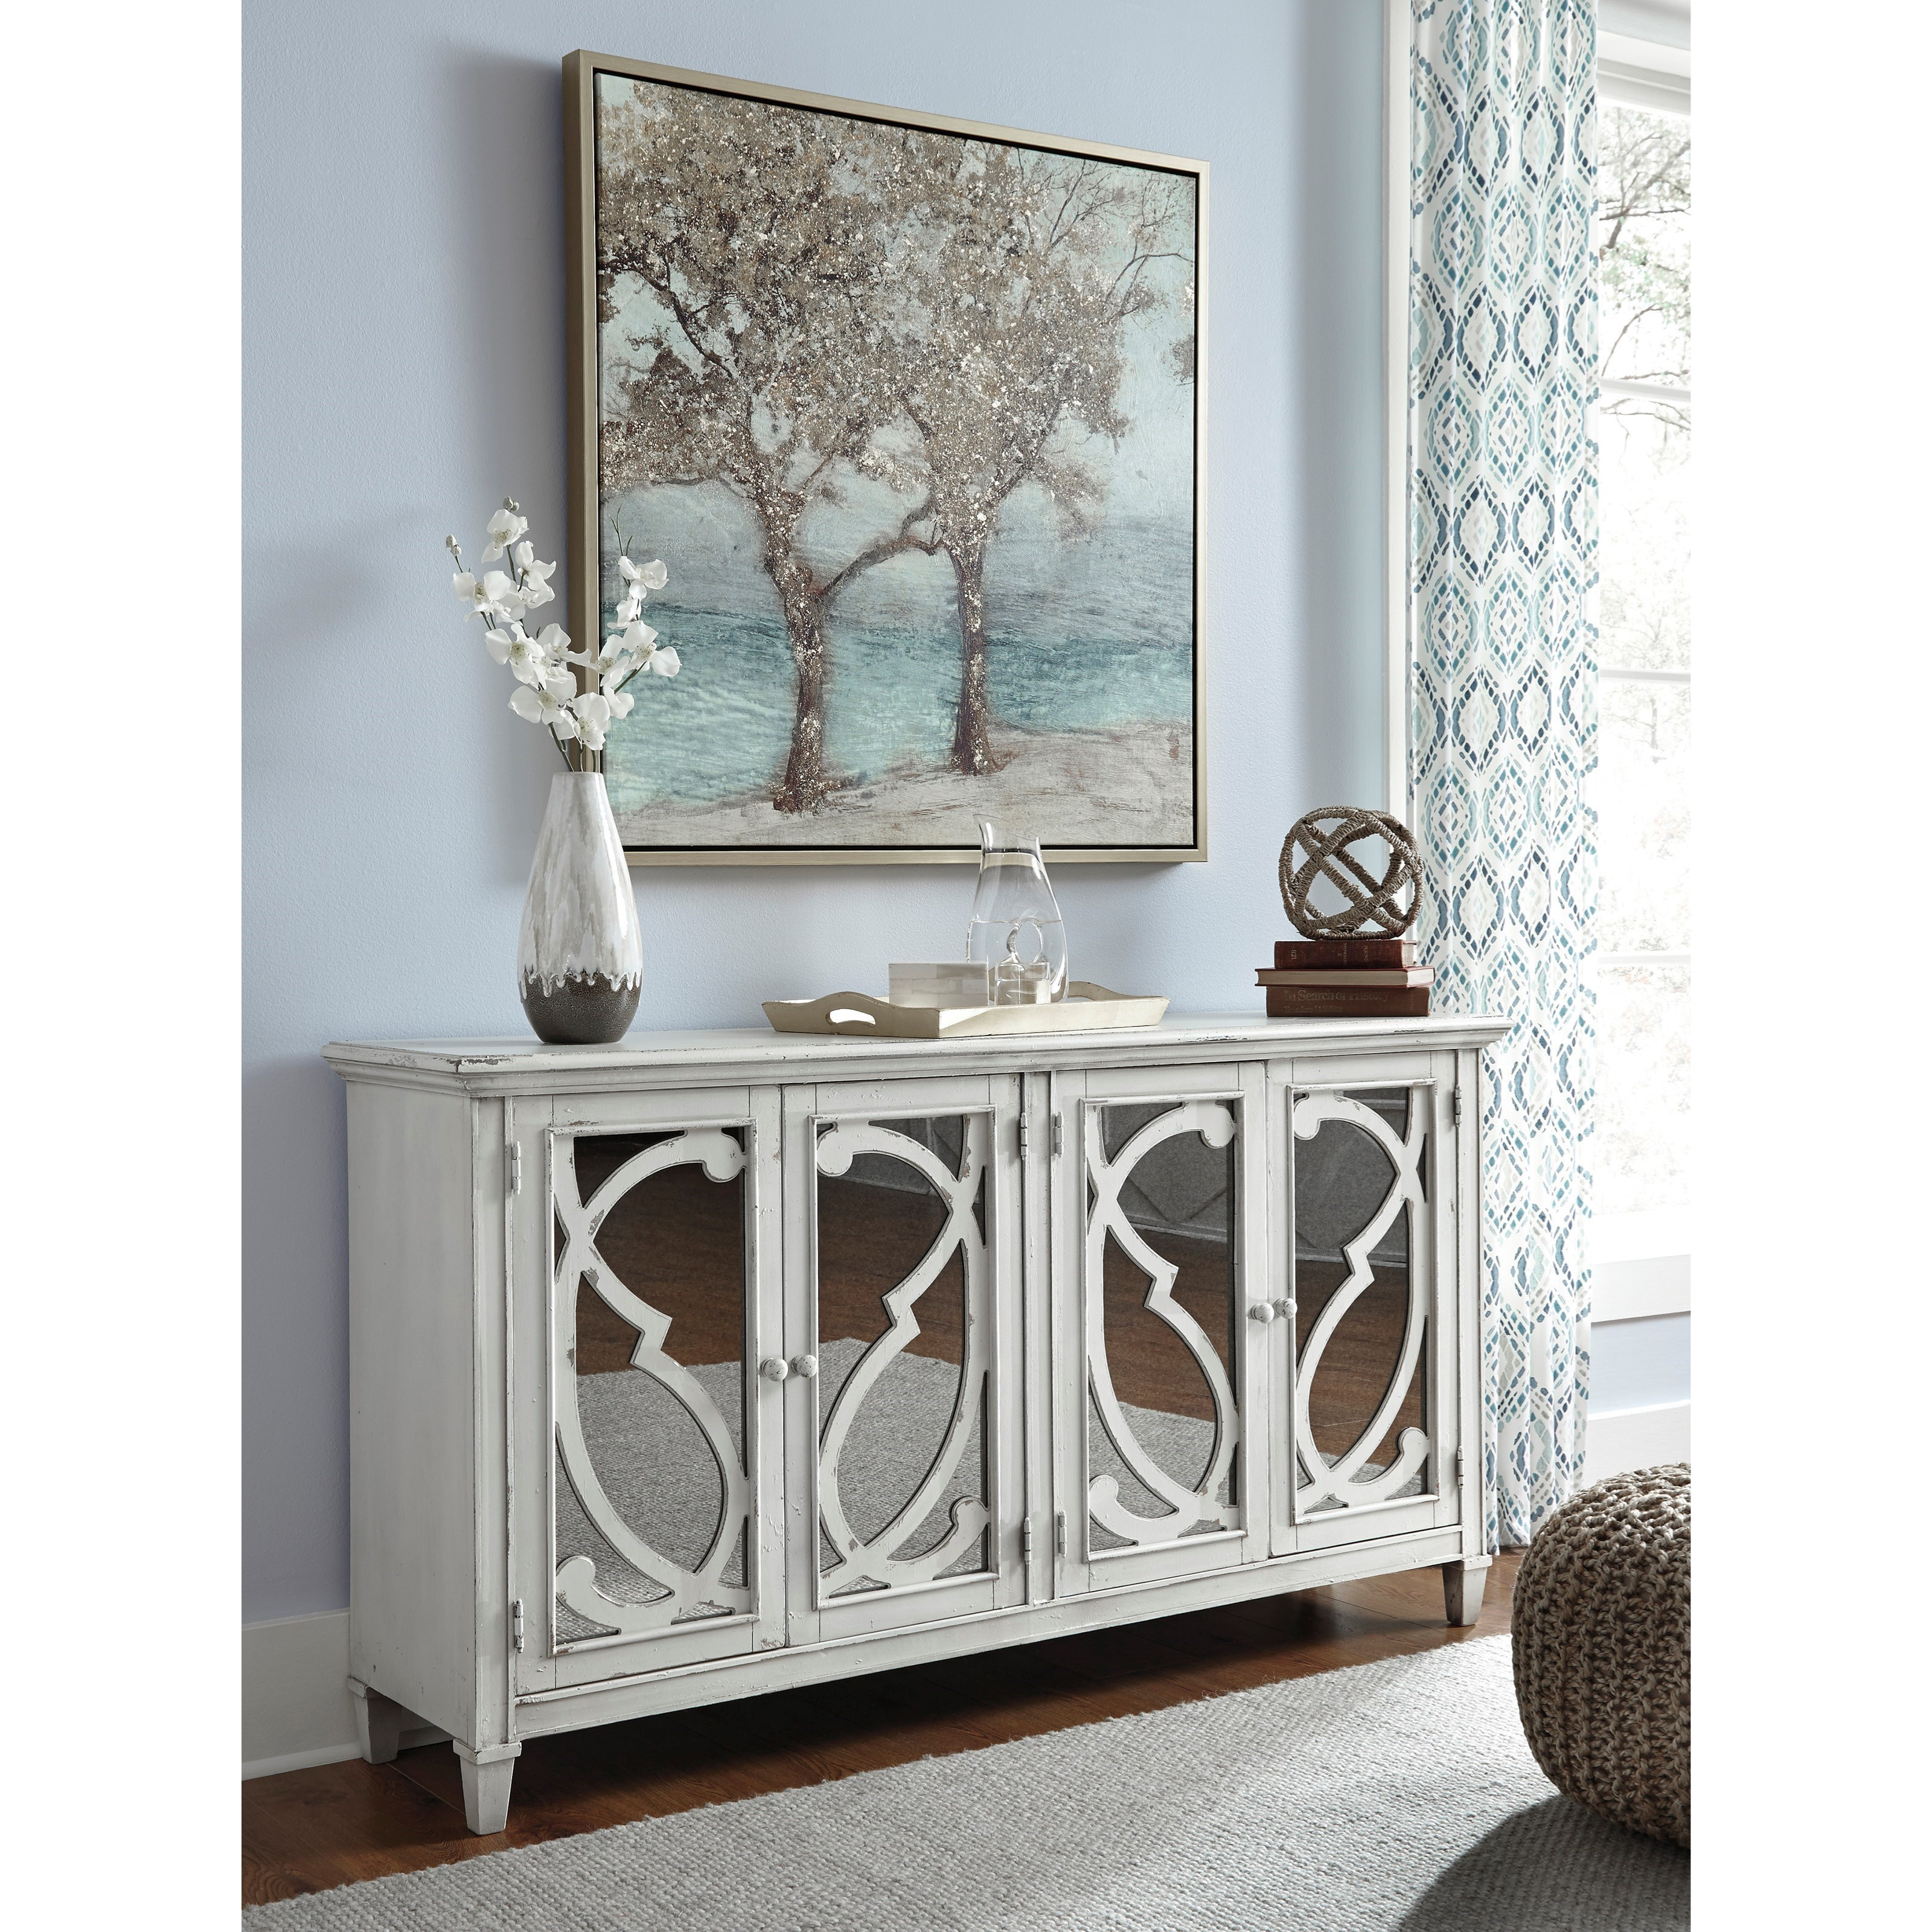 Signature Design By Ashley Mirimyn Door Accent Cabinet In